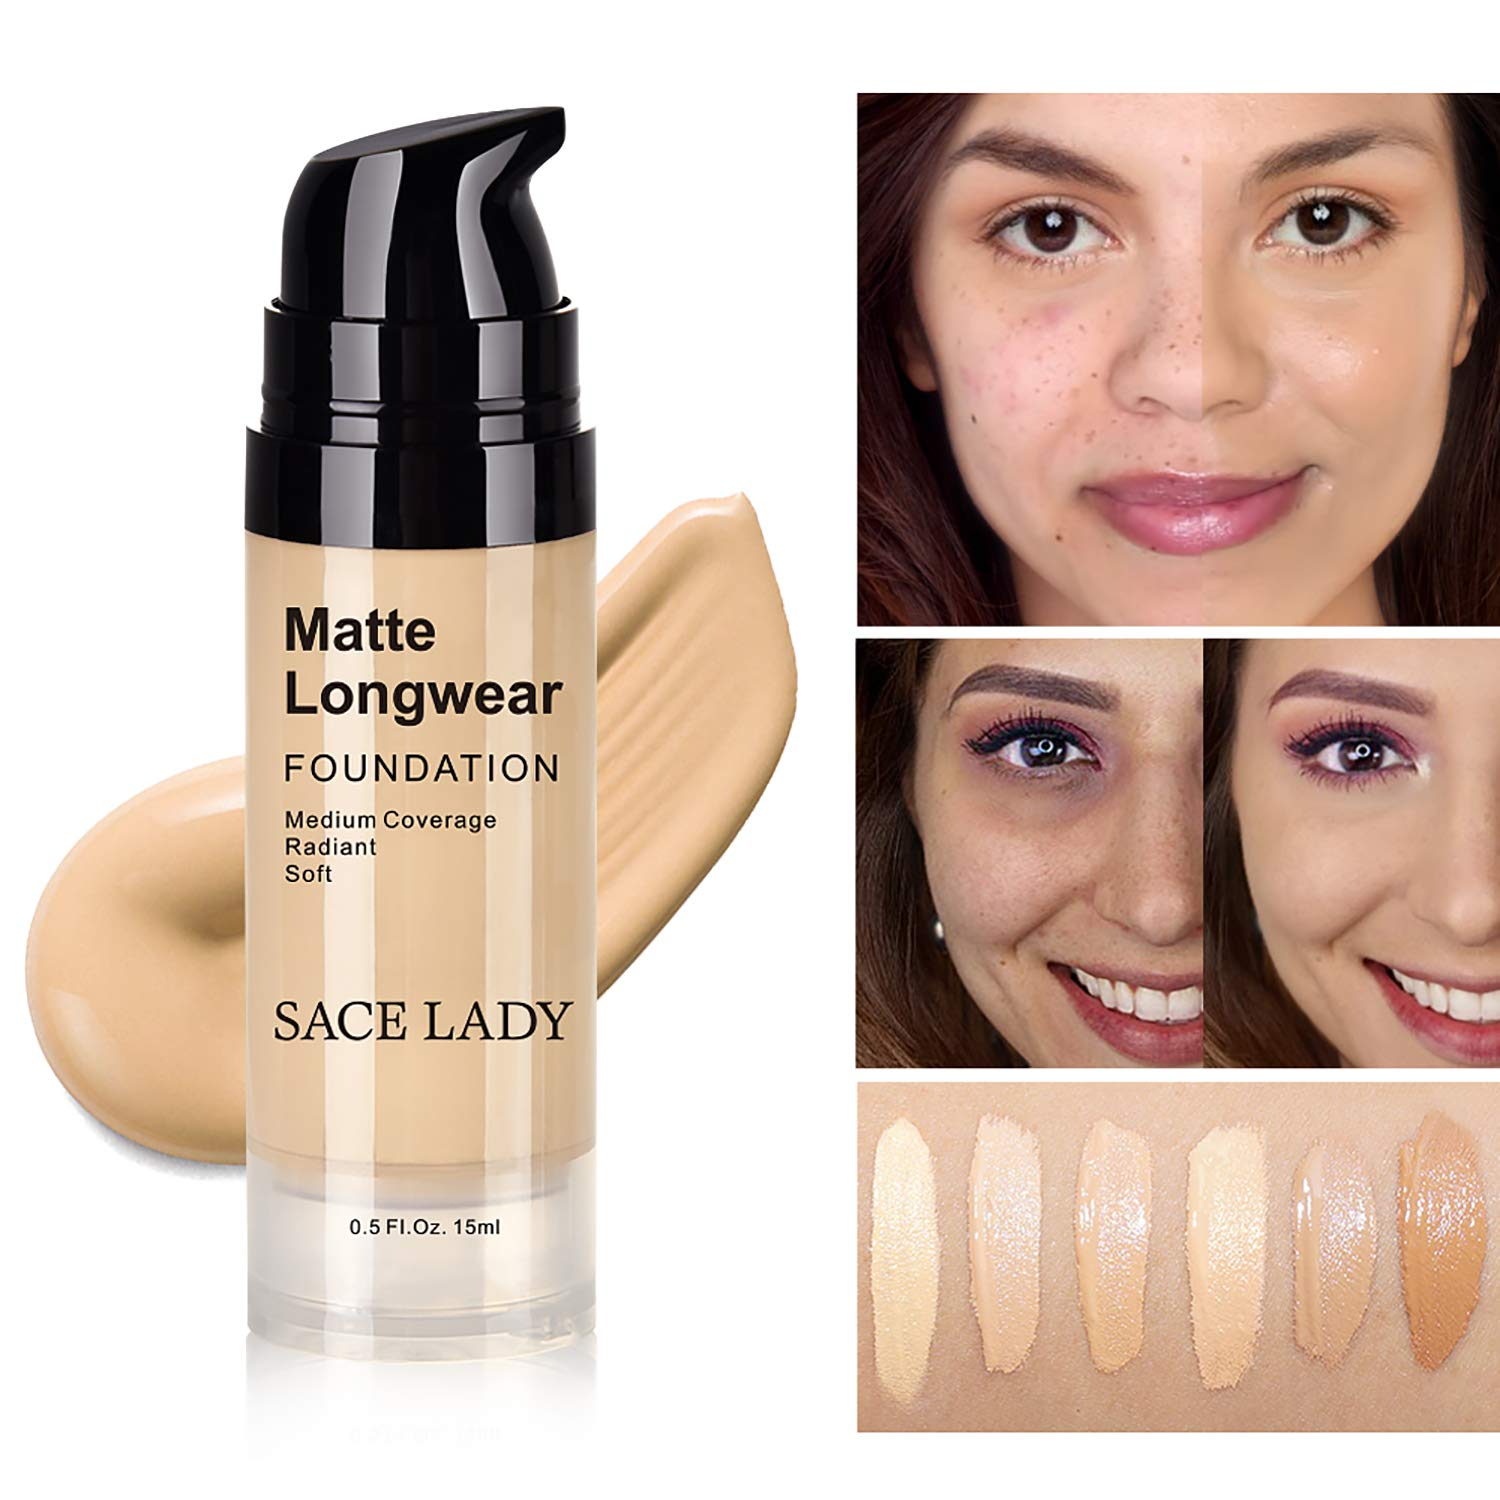 SACE LADY Matte Finish Liquid Foundation, Waterproof Ultra-HD Flawless Fluid Foundation, 0.50Fl Oz/15ml, Light Natural